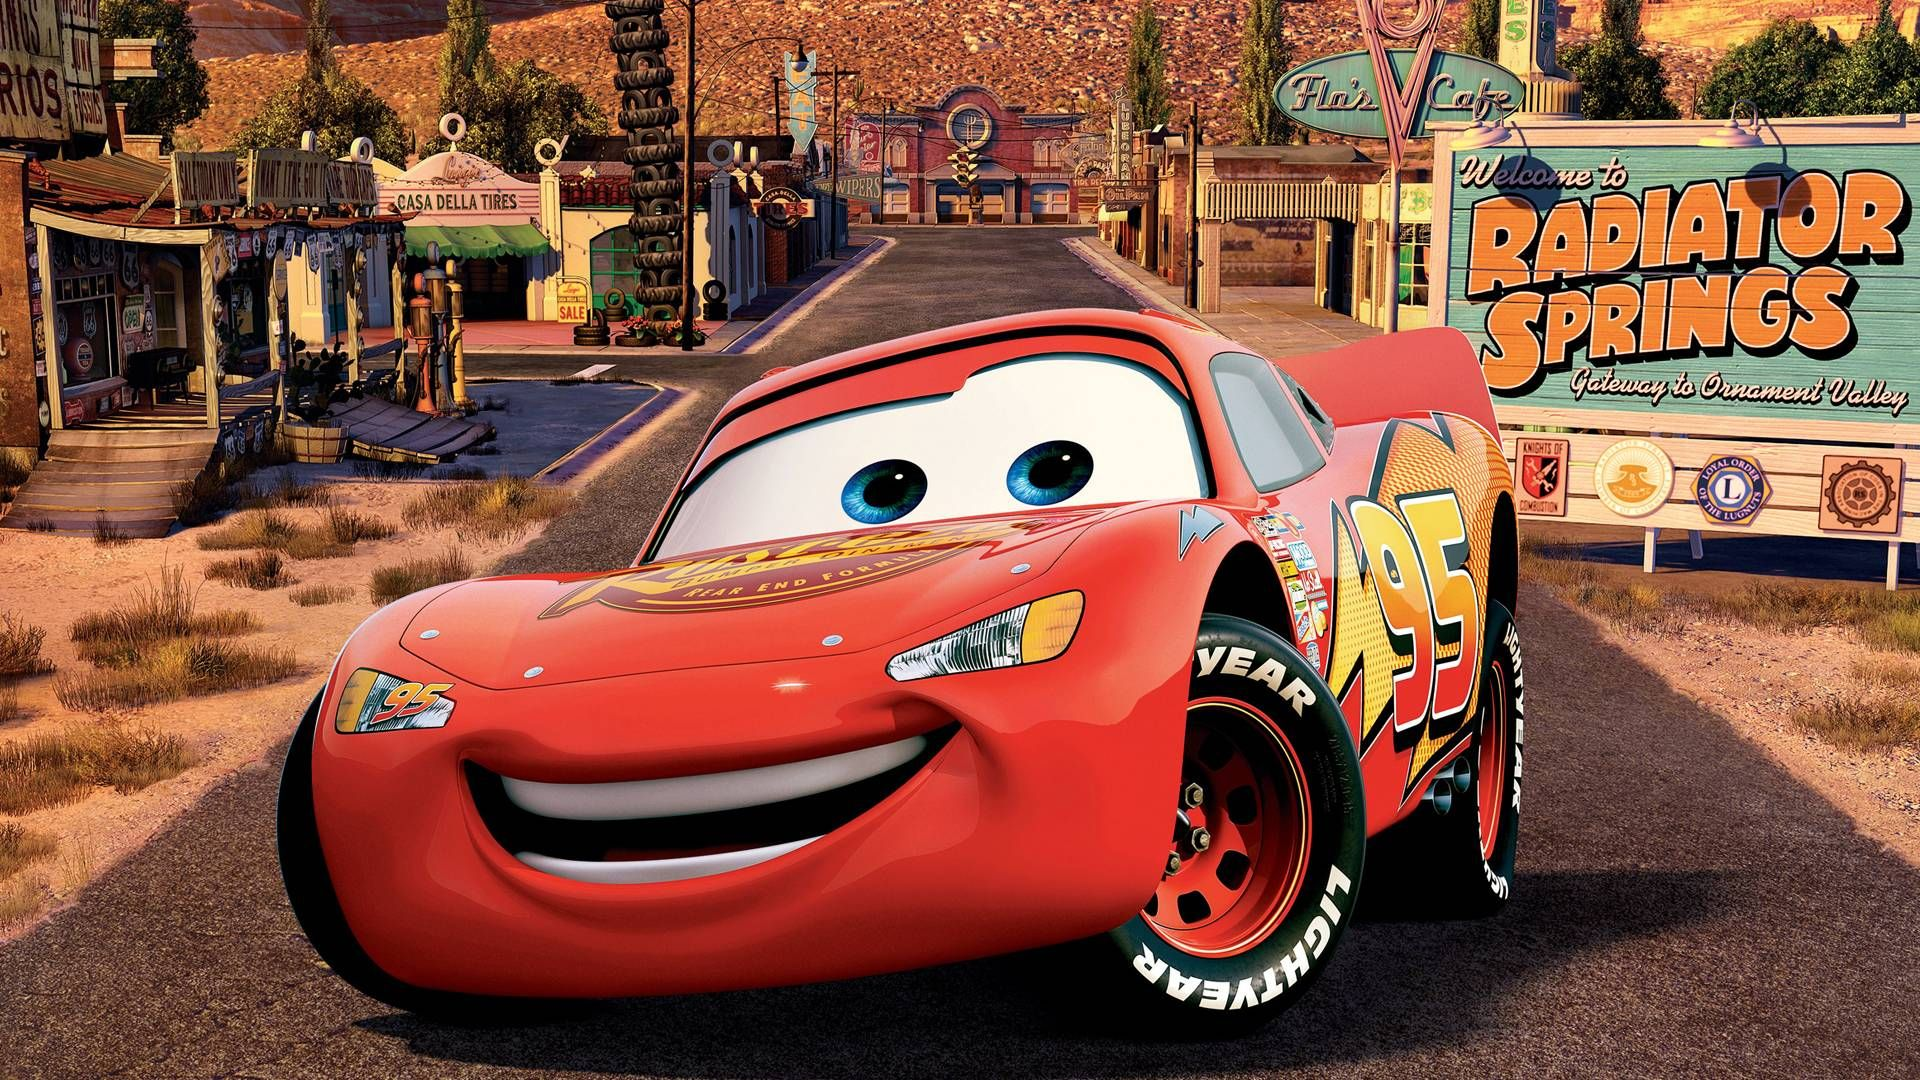 Best Wallpaper Cars Lightning Mcqueen In Windows Wallpaper Themes With Wallpaper Cars Lightning Mcqueen Download Hd Wallpaper Festa Carros Carros Caes